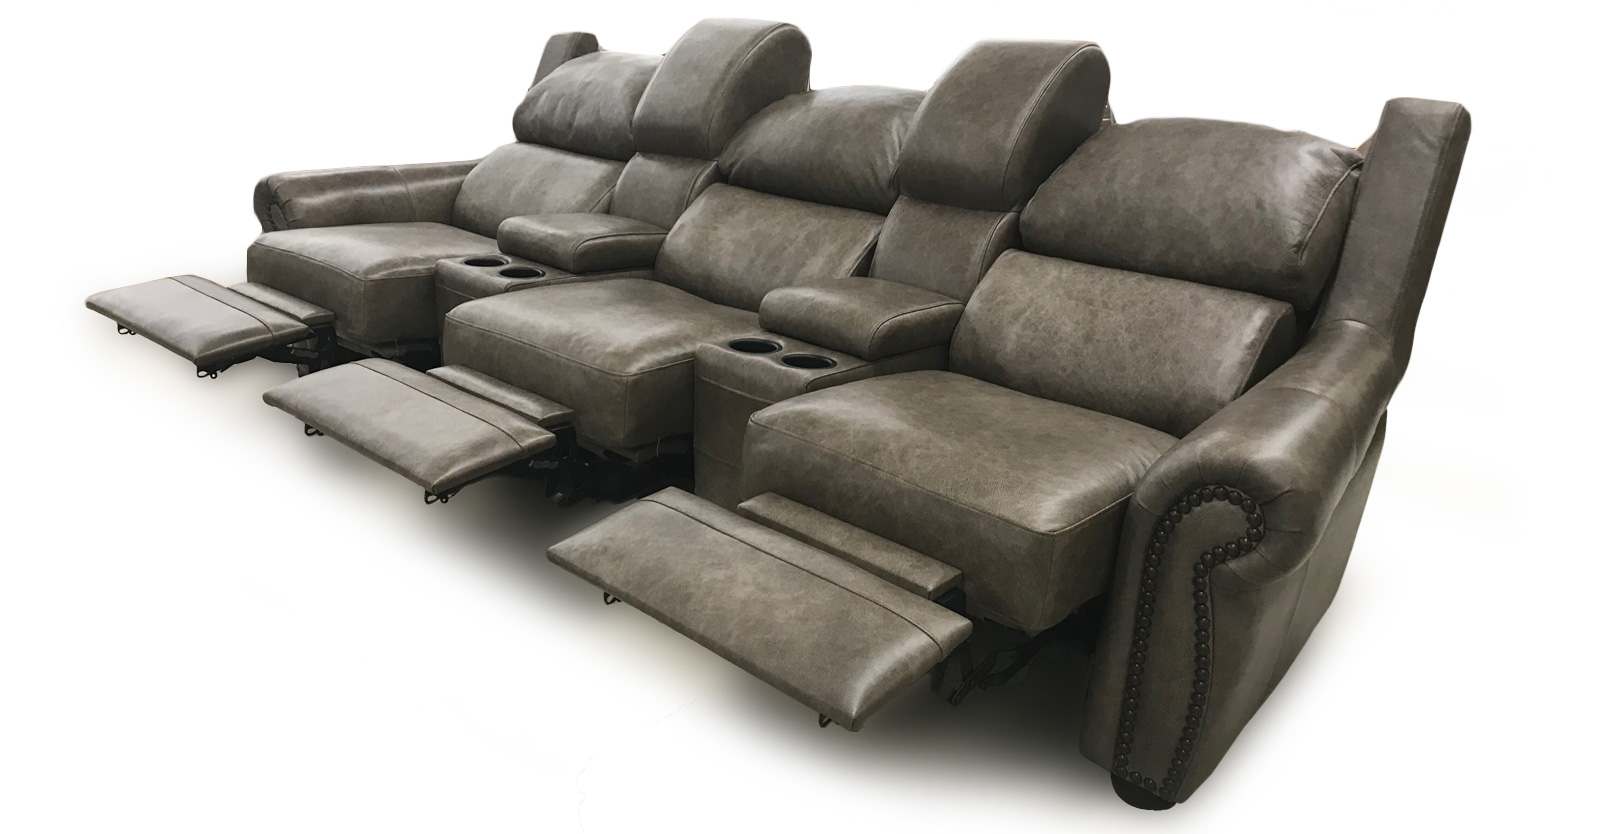 Three Seat With 2 Consoles Reclined